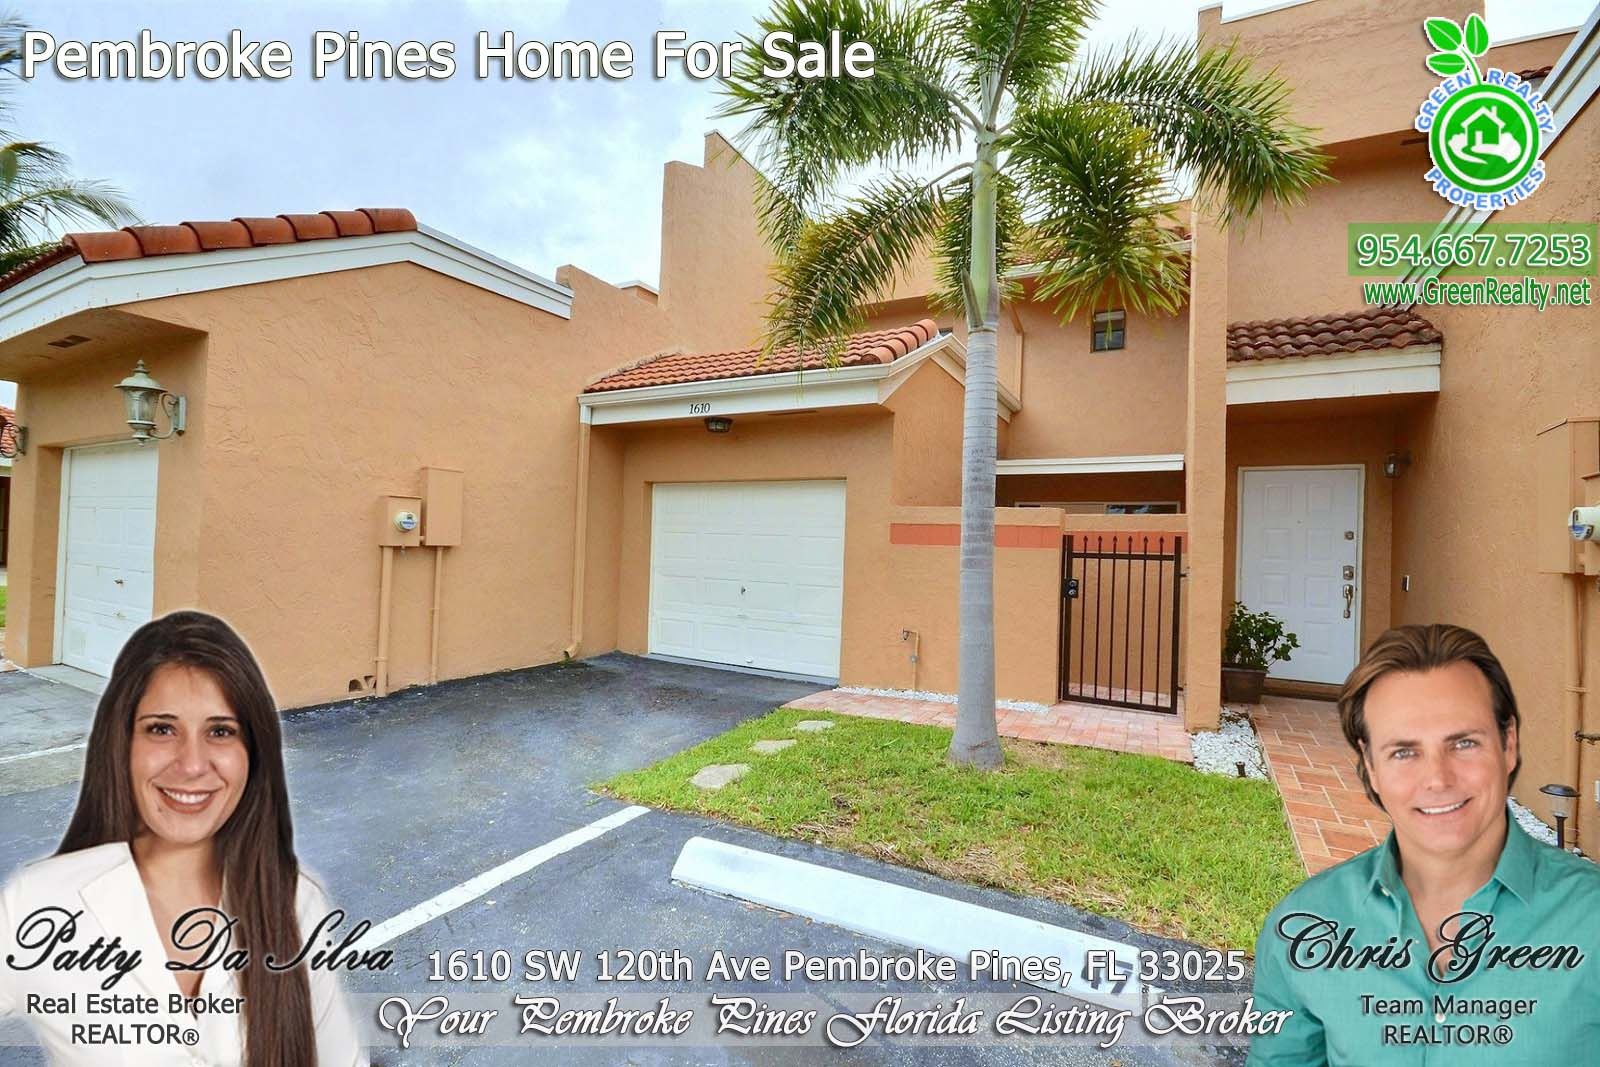 Pembroke Pines Real Estate